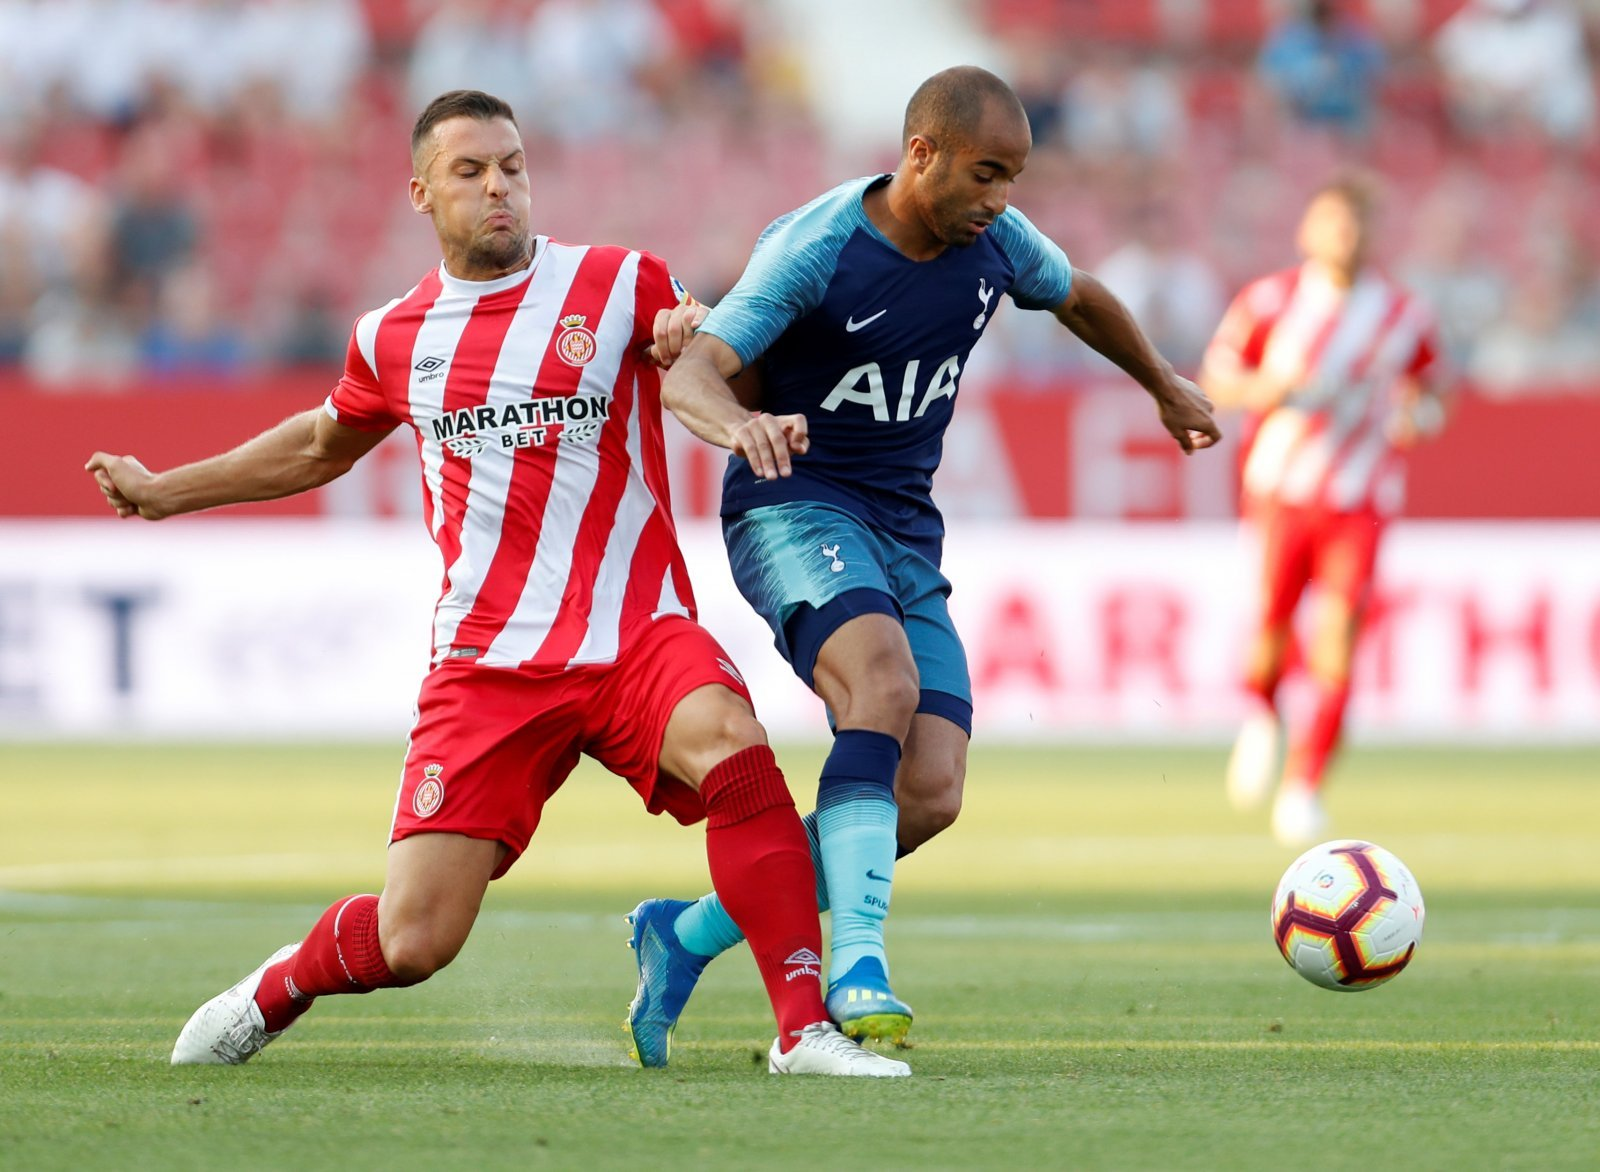 Selling Lucas Moura would be an awful decision from Tottenham Hotspur